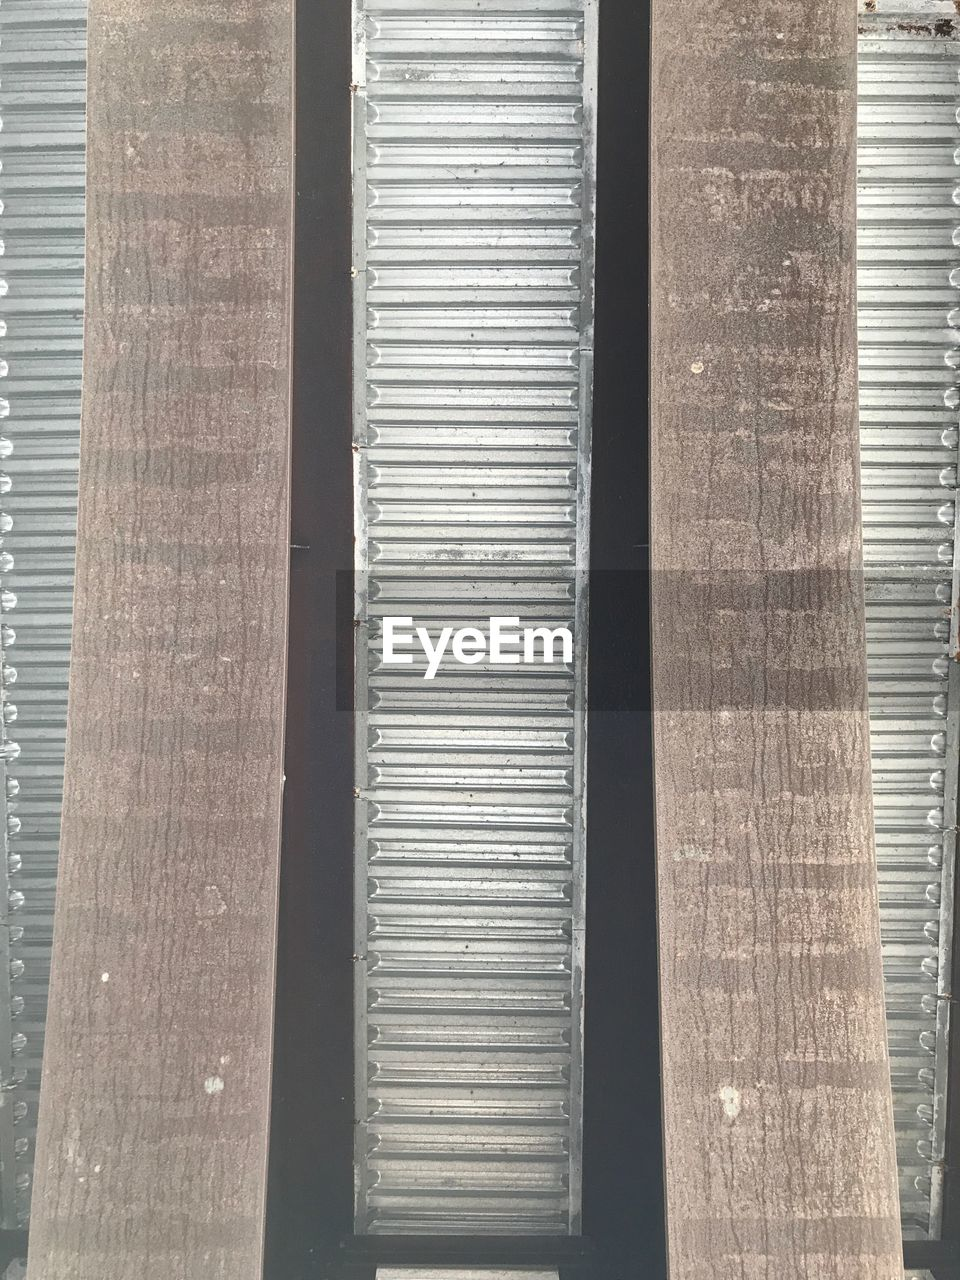 no people, day, wood - material, indoors, blinds, architecture, close-up, corrugated iron